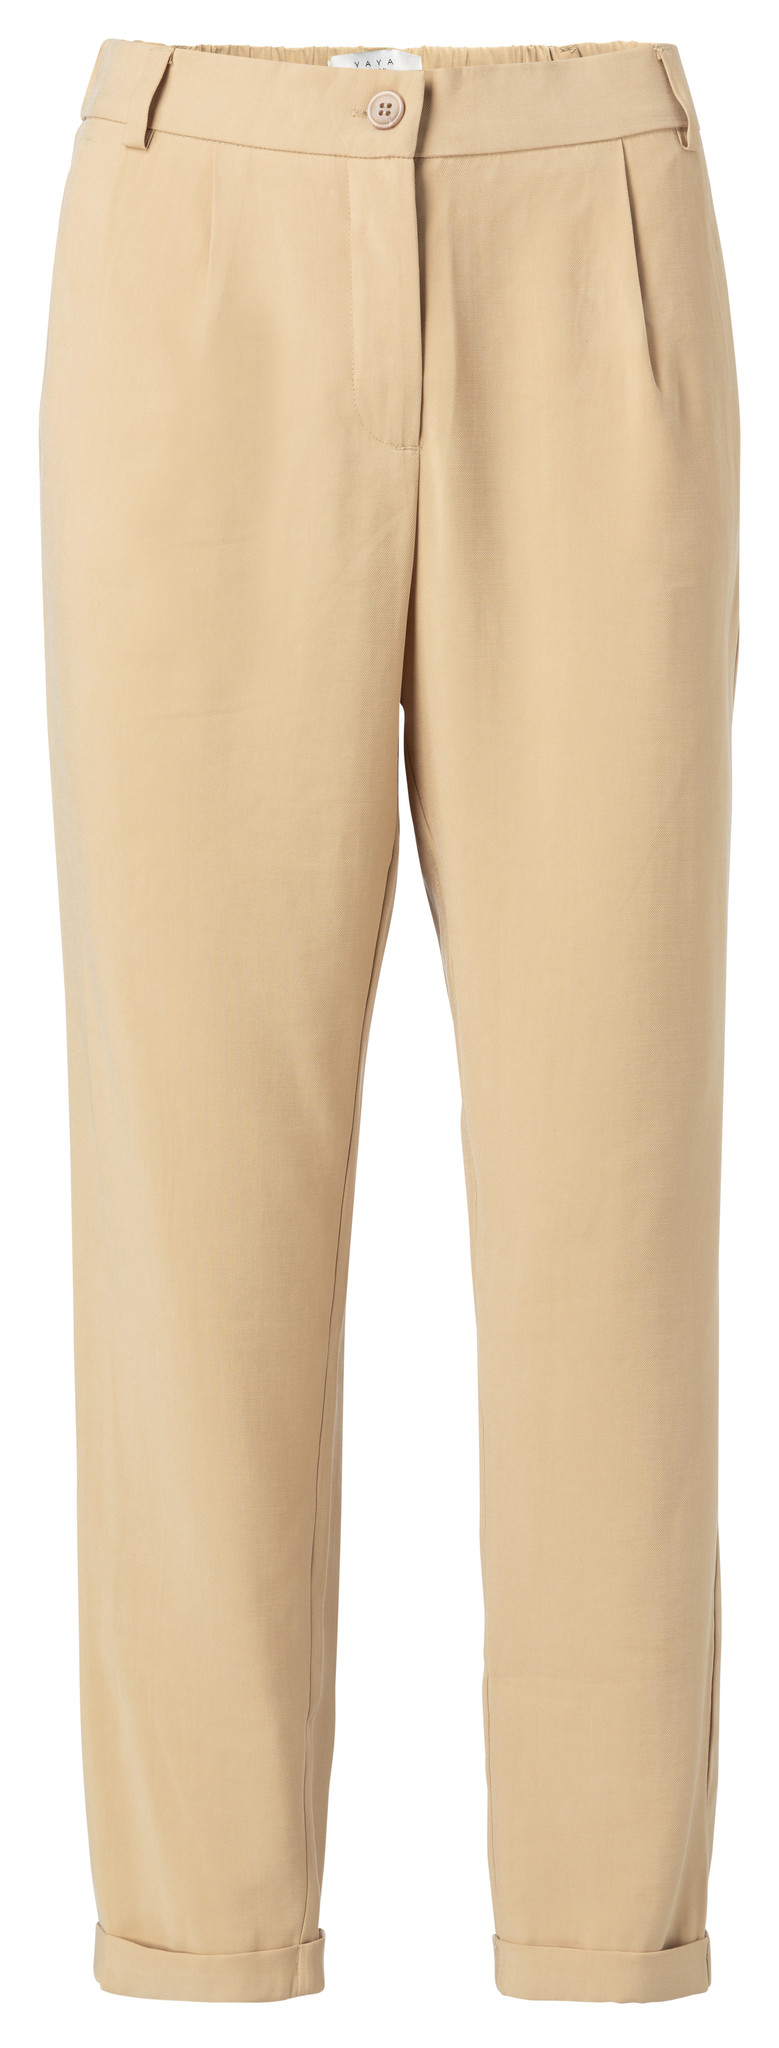 yaya Relaxed fit trousers 121156-014-1